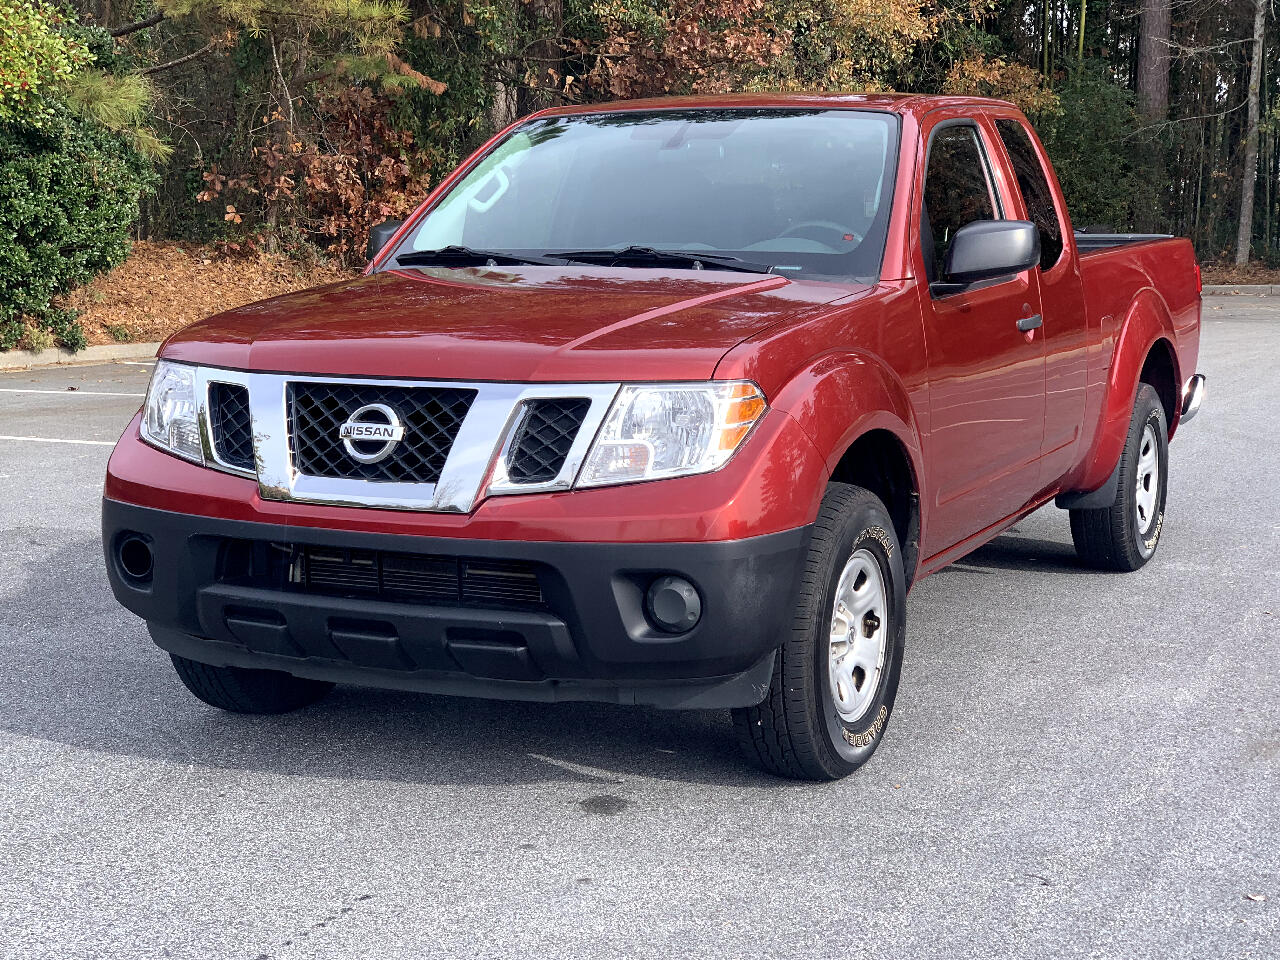 2016 Nissan Frontier SV King Cab I4 5MT 2WD